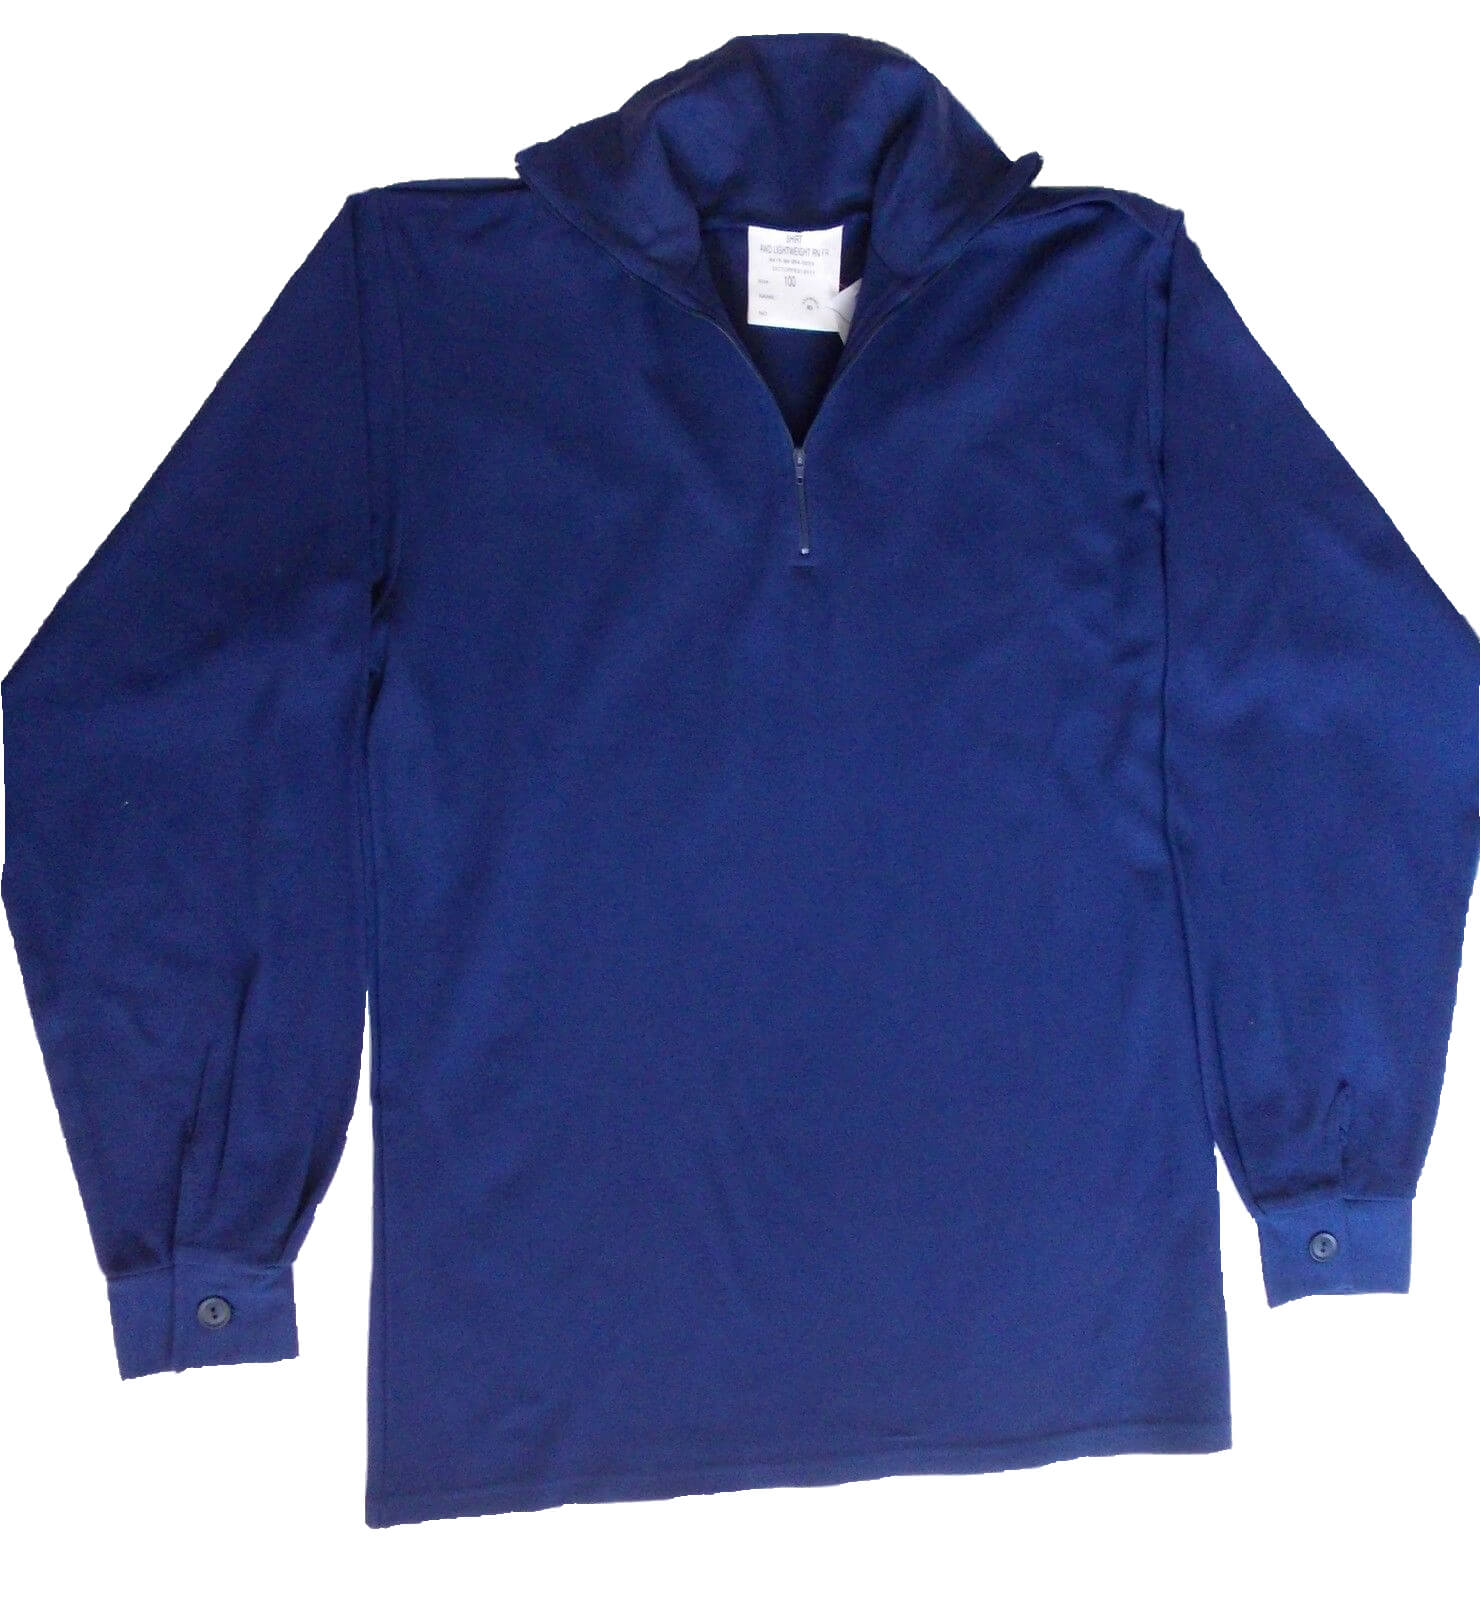 Blue British Norgie Shirt